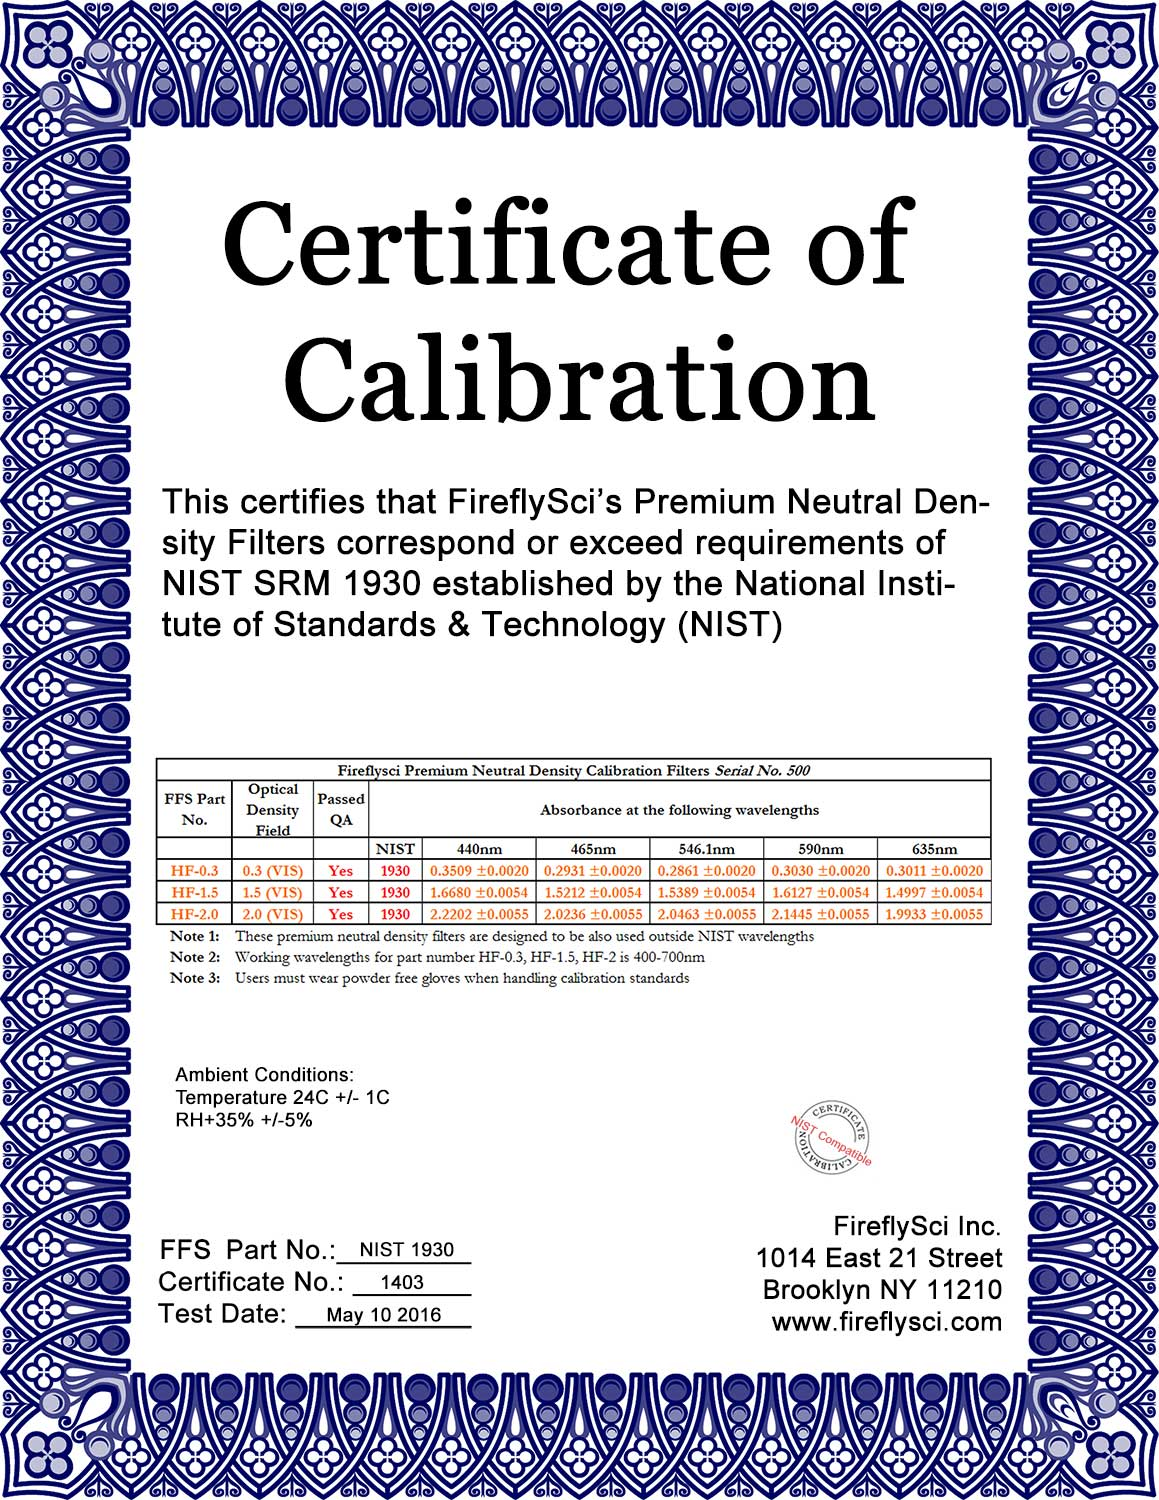 Sample NIST-1930 kit certificate of calibration